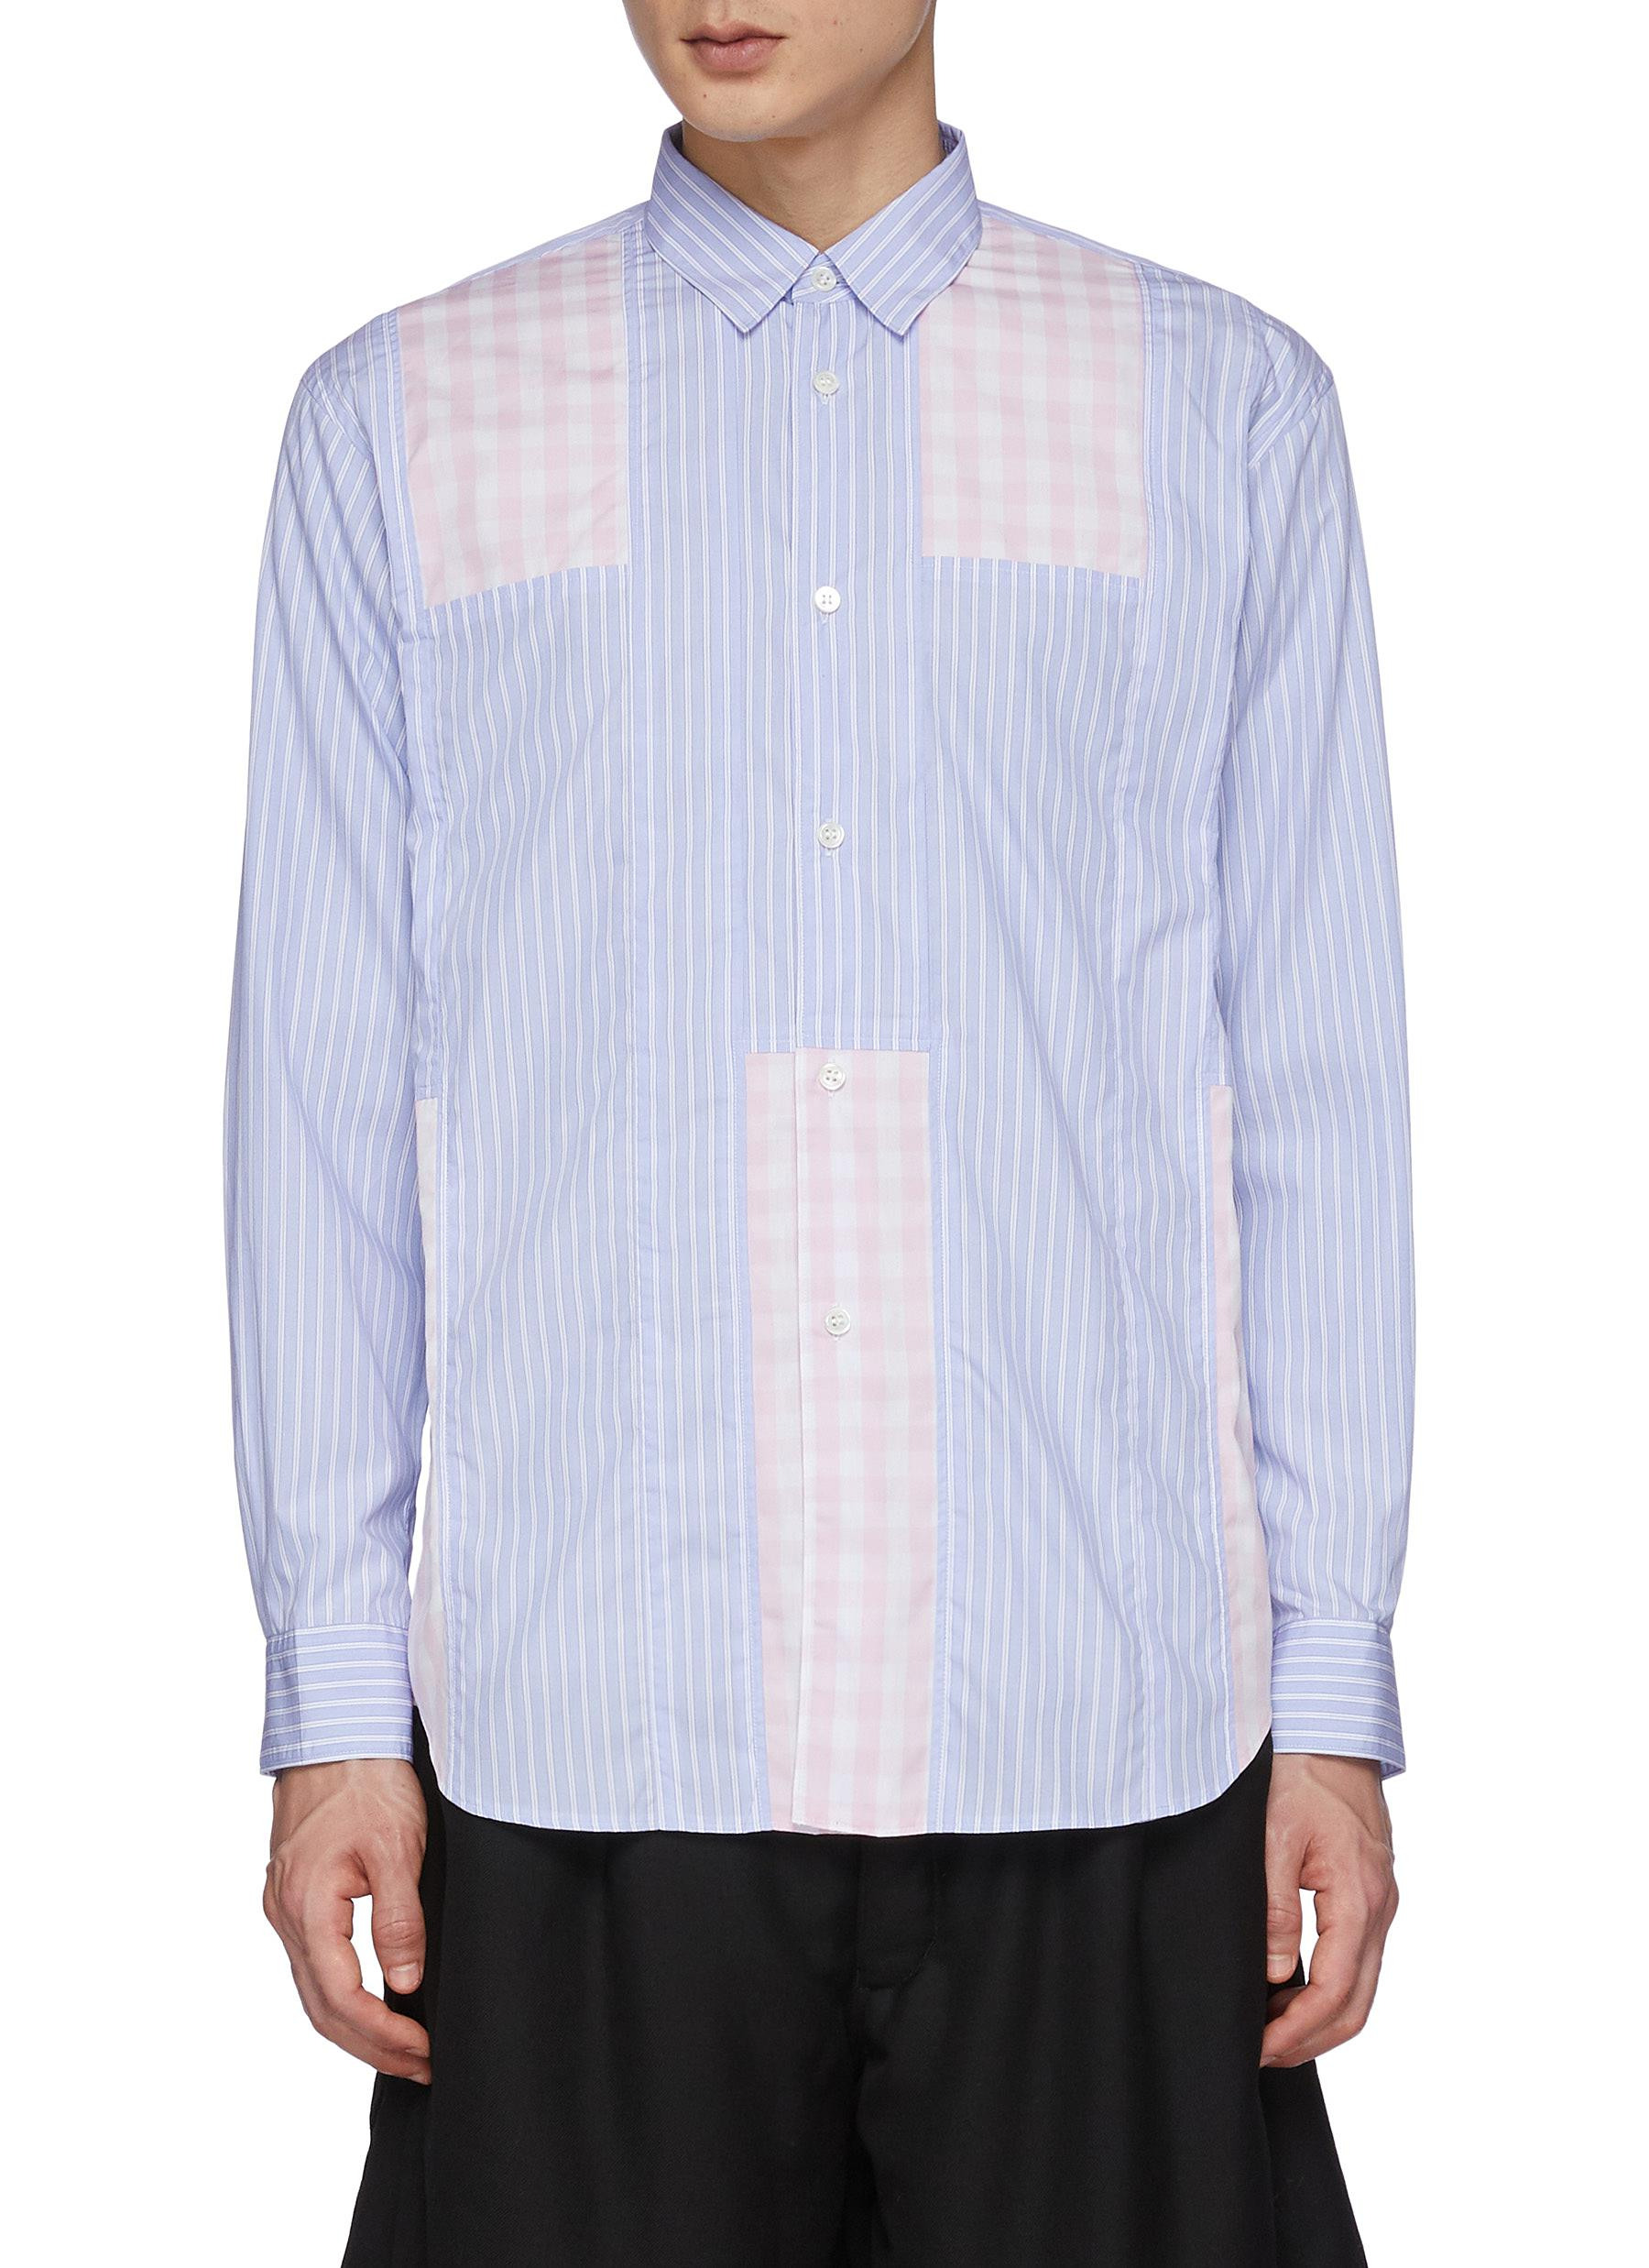 Stripe Patched Pink Checker Shirt